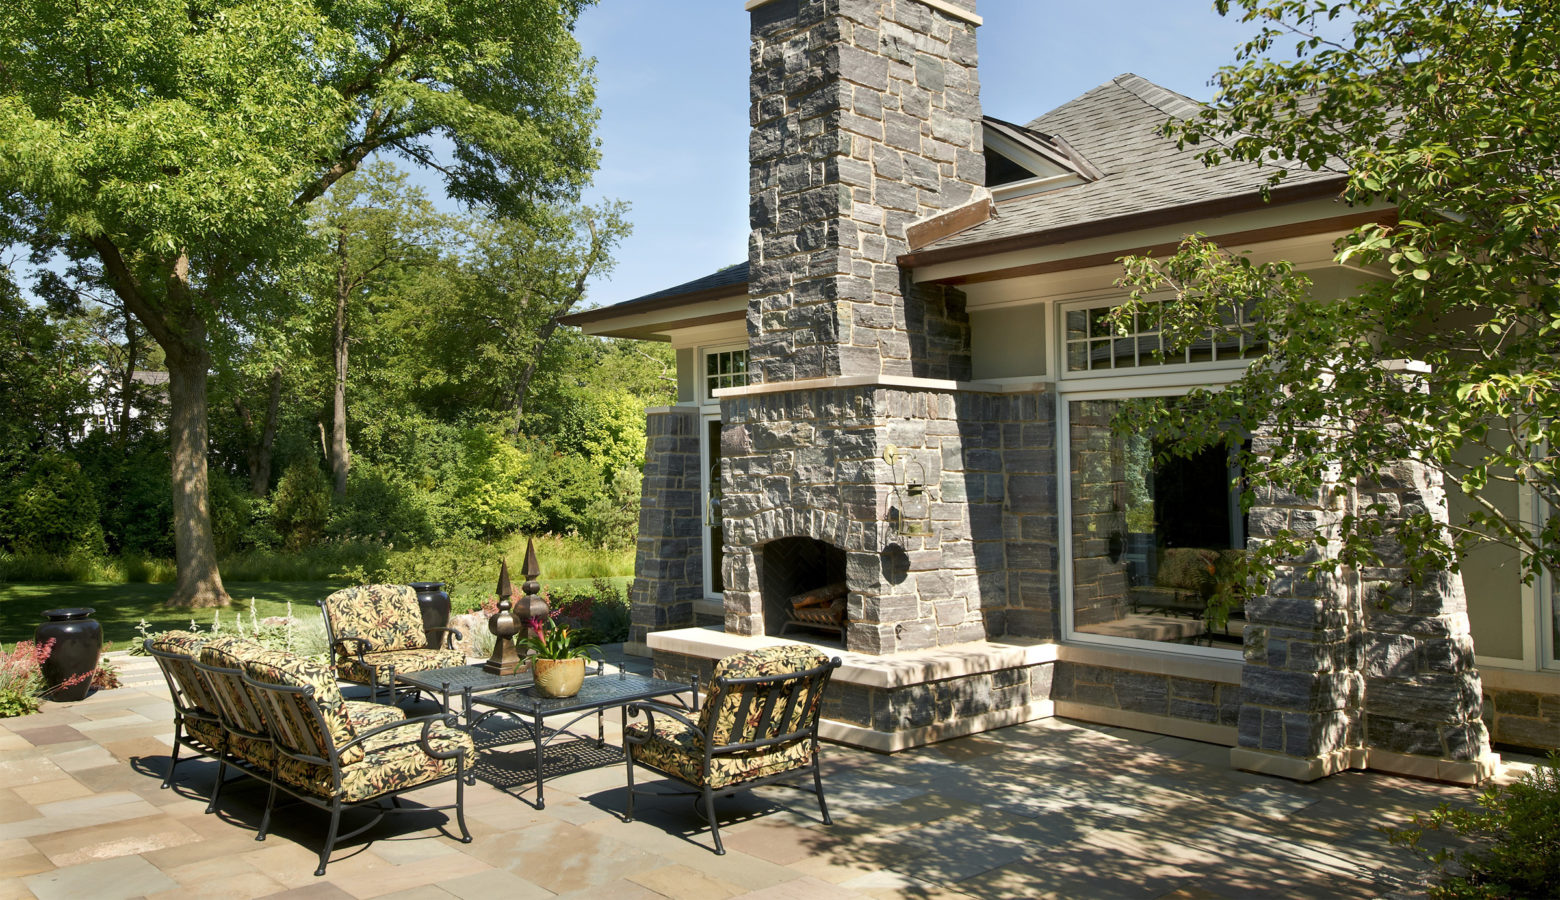 Inspiring Outdoor Living Spaces: Design Ideas to Turn Your ... on Small Backyard Living Spaces  id=94392